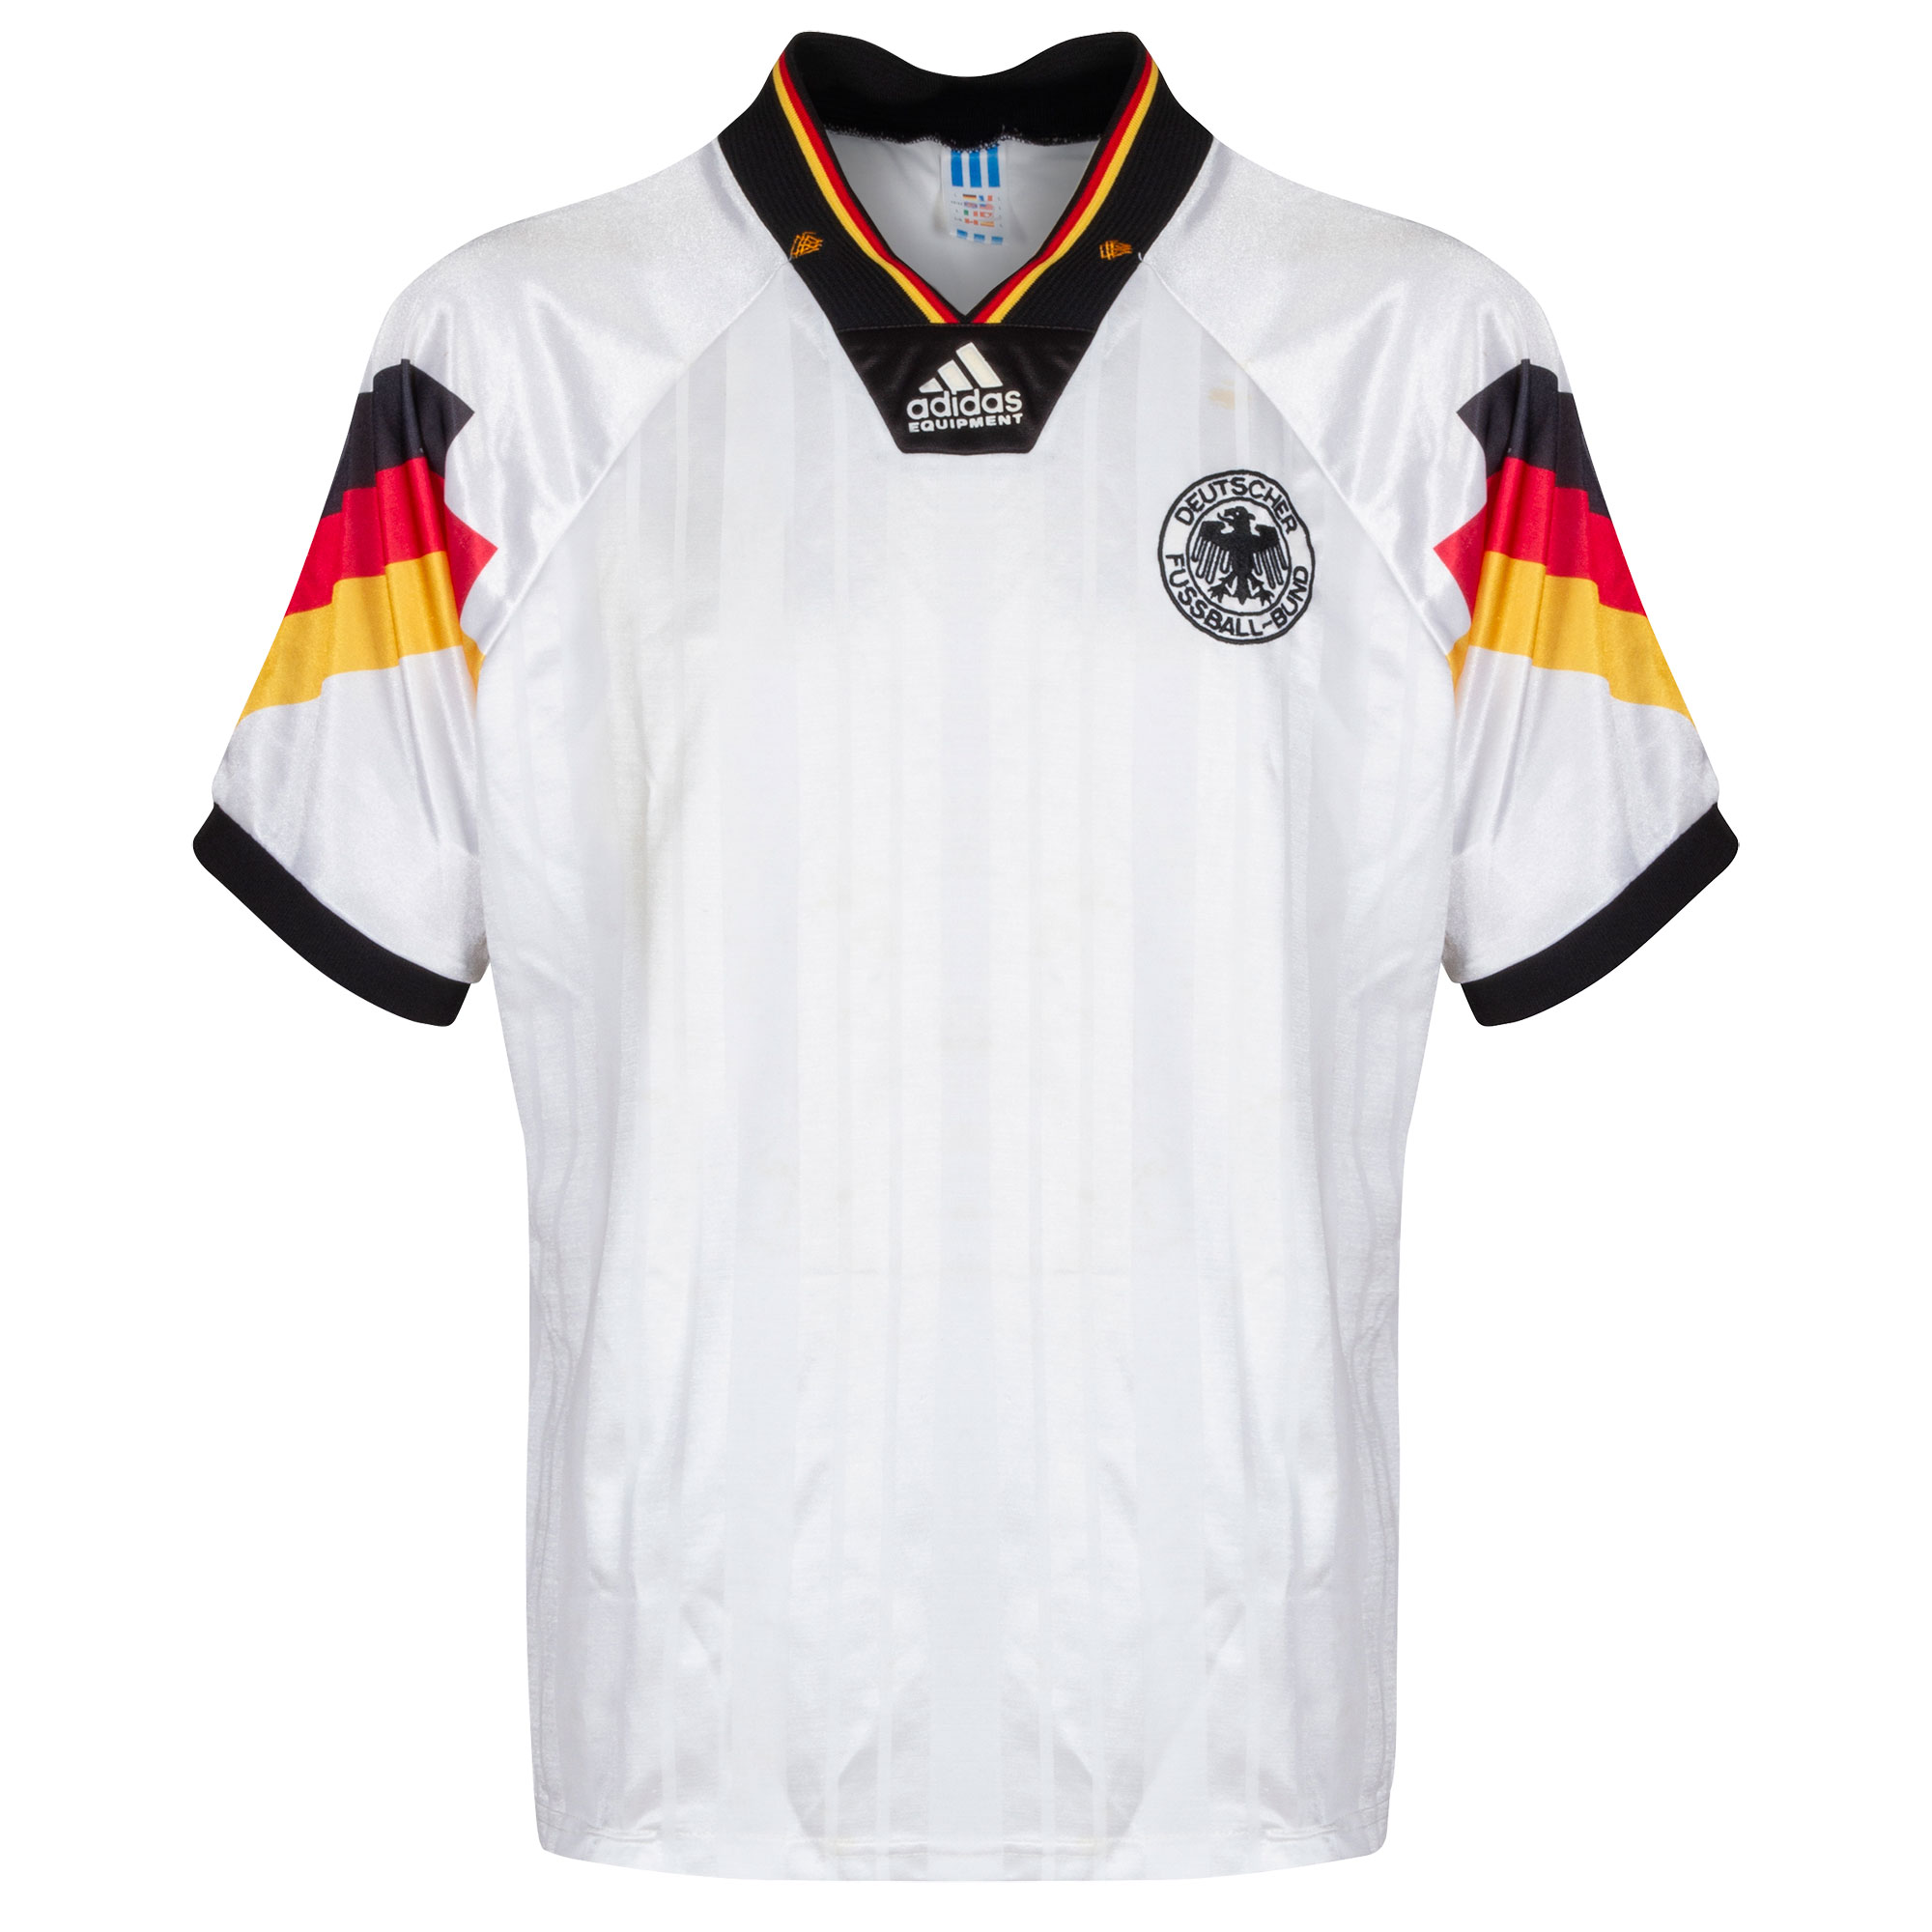 adidas Germany 1992-1994 Home Shirt - USED Condition (Poor) - Size Large